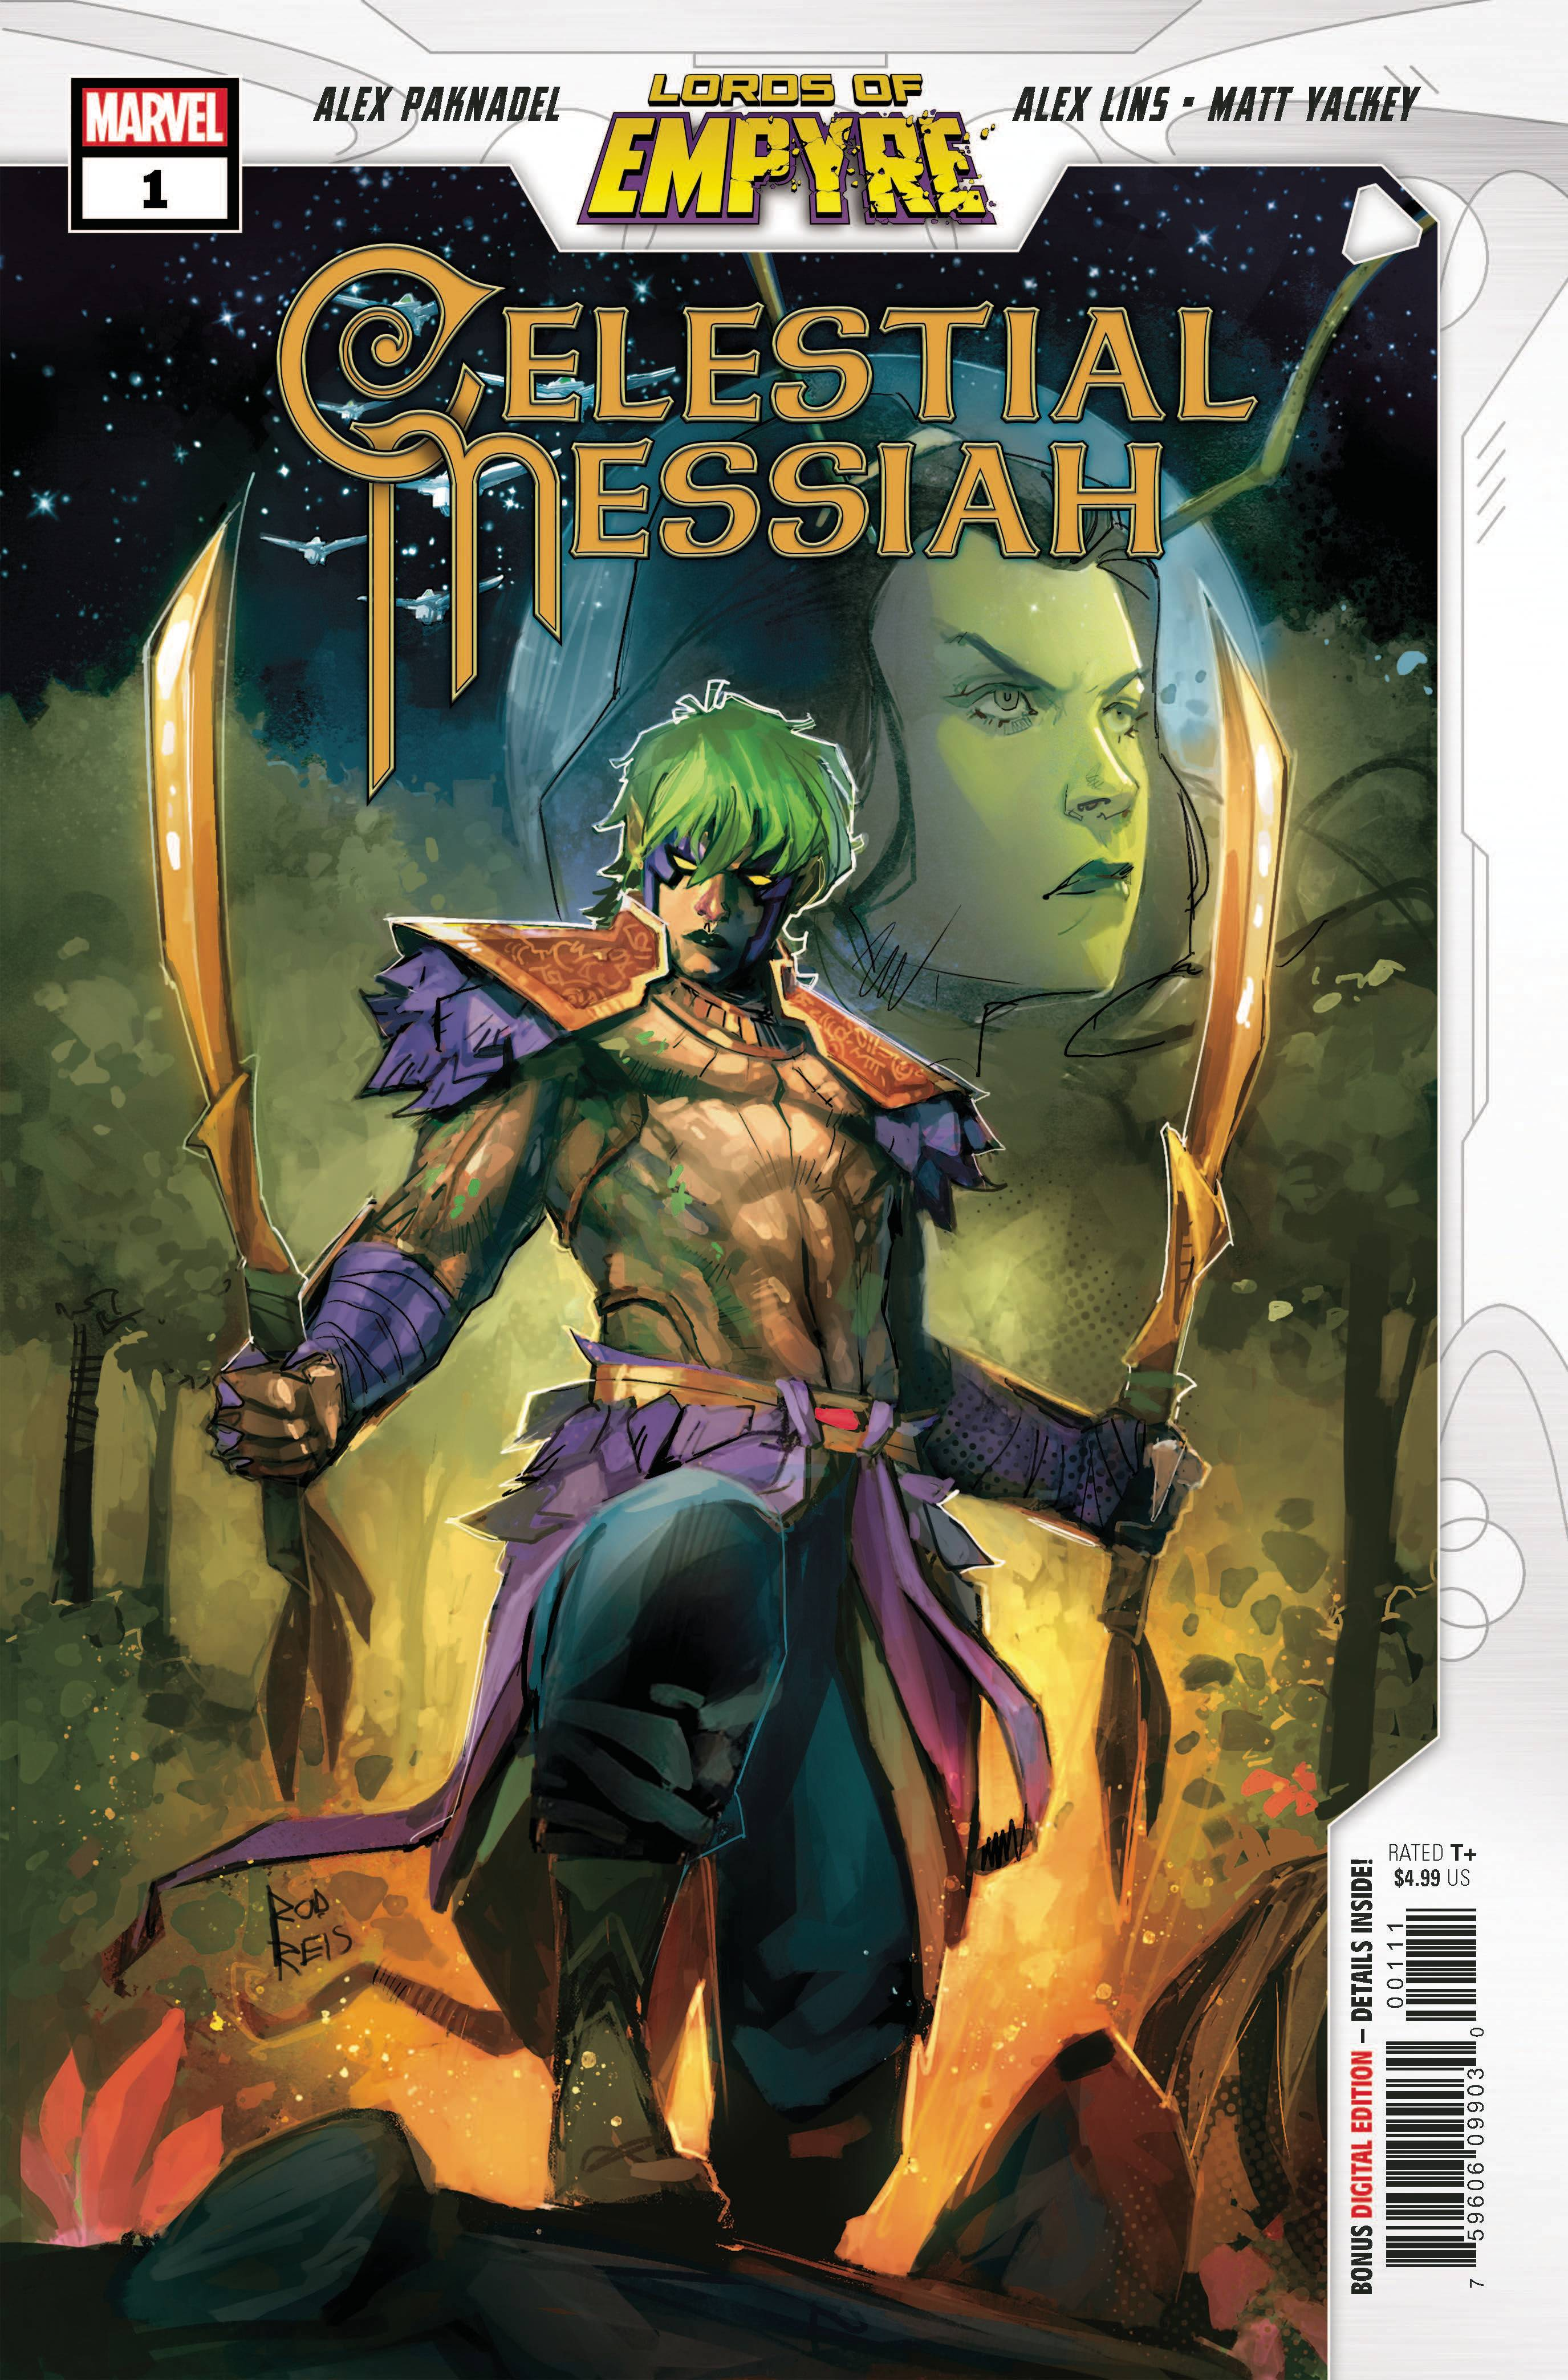 LORDS OF EMPYRE CELESTIAL MESSIAH #1